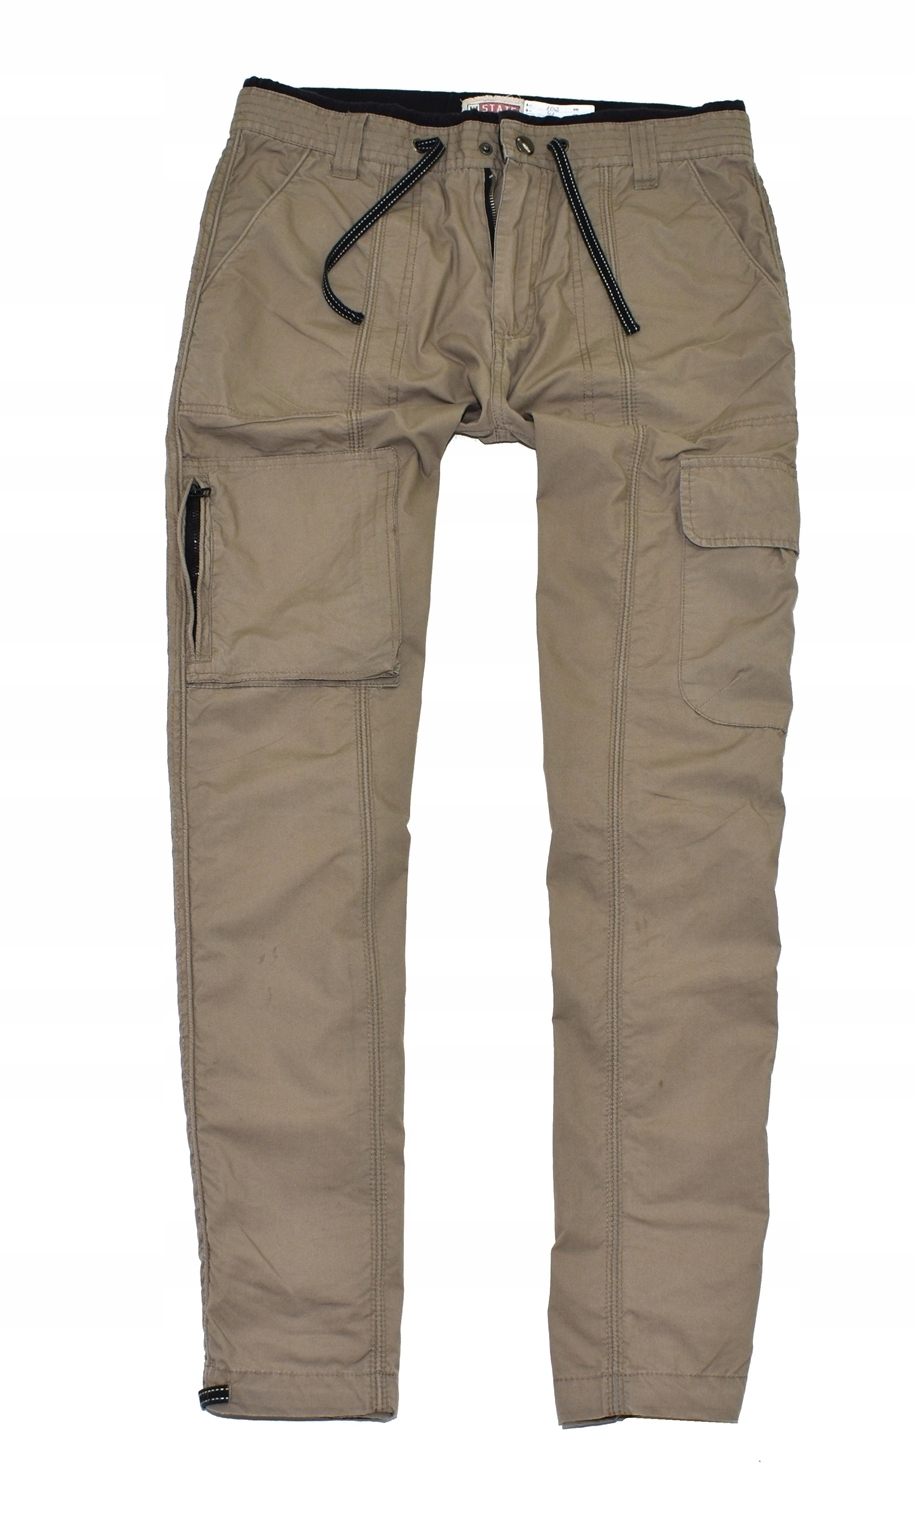 MM 191 VINTAGE_SOLID CARGO CASUAL PANTS_M